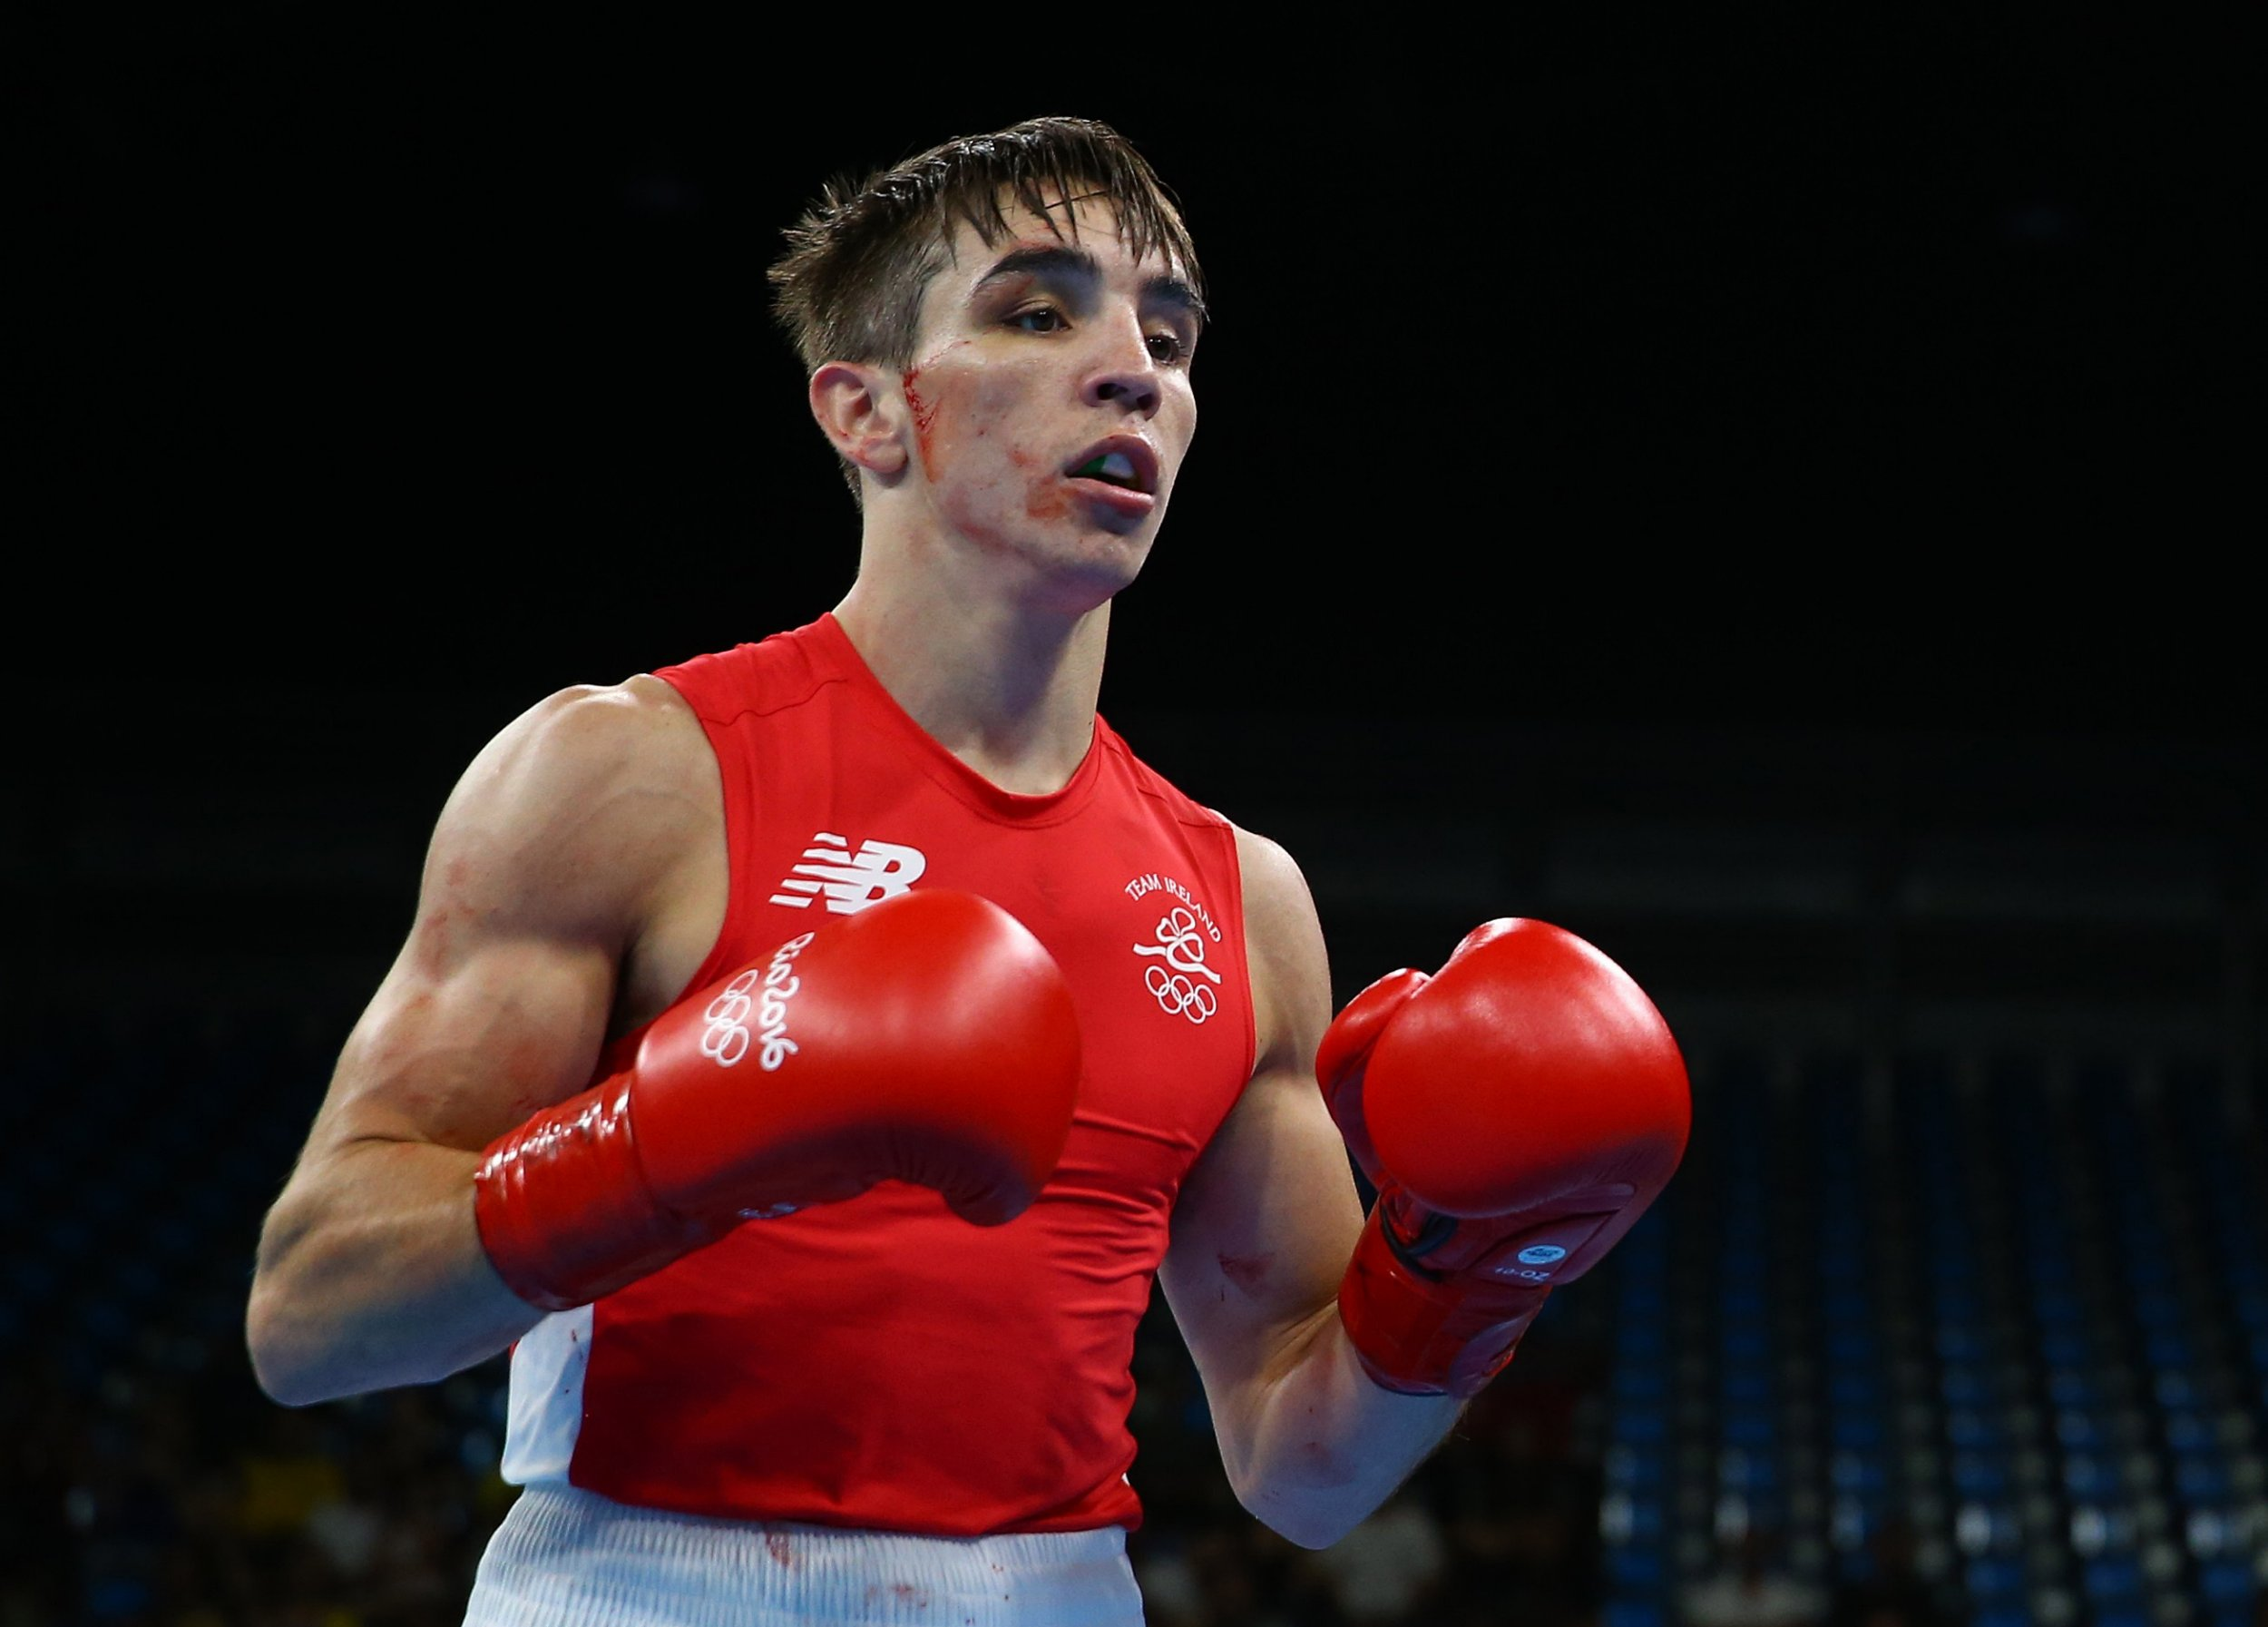 AIBA send home judges after review but insist Michael Conlan and all other results will stand